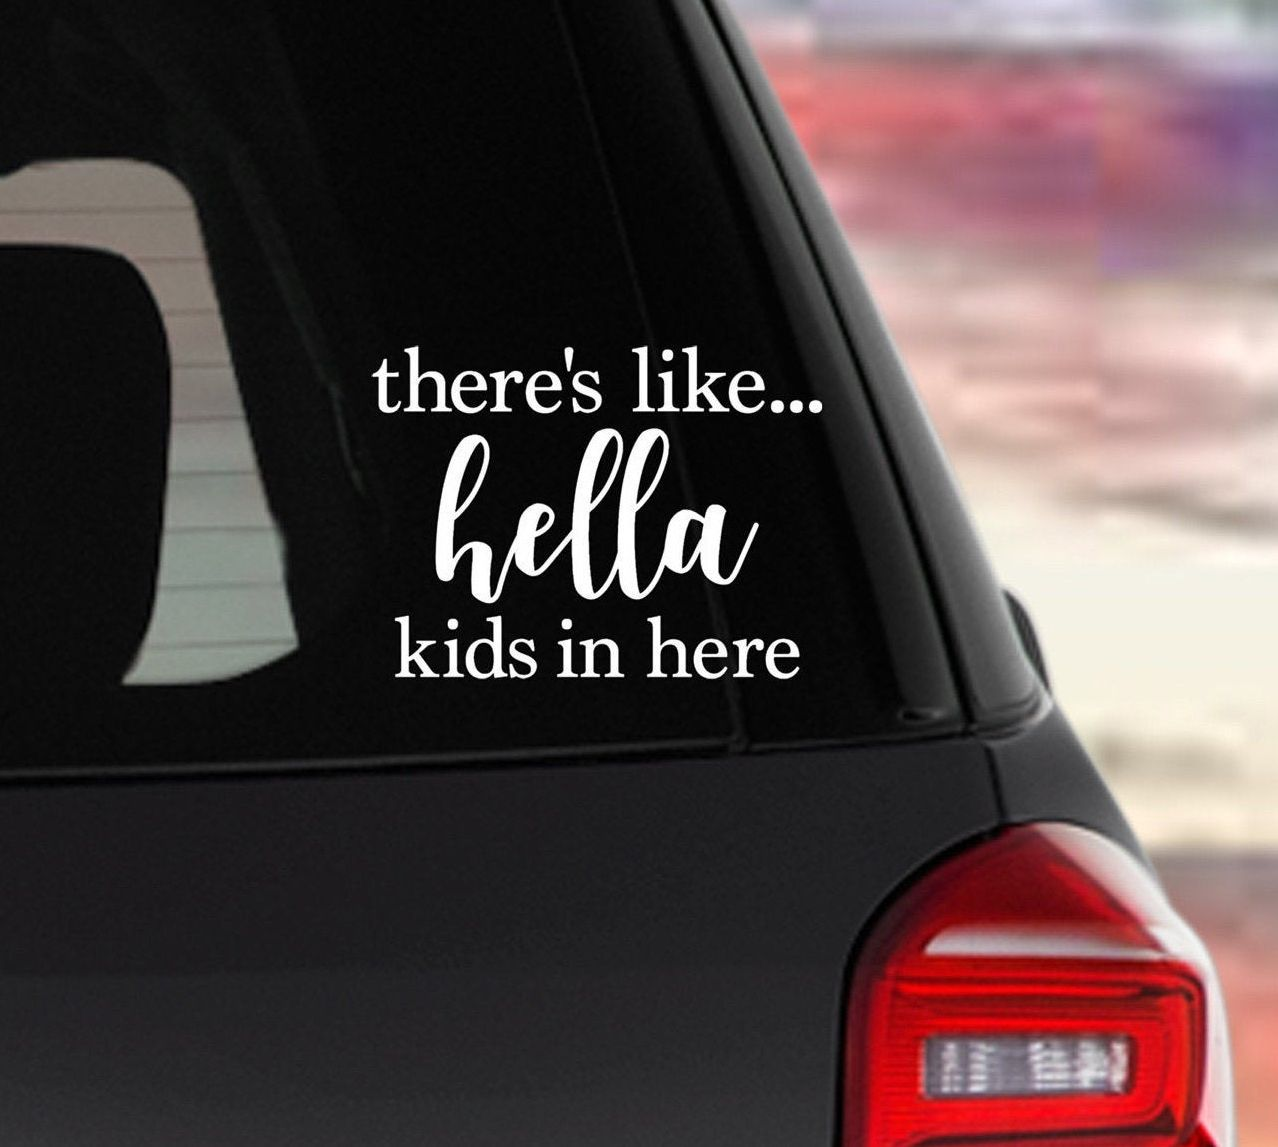 There S Like Hella Kids In Here Cussing Mom Car Accessories Car Decals Car Stickers Mom Stickers Bumpe Car Sticker Design Funny Bumper Stickers Bumper Stickers [ 1147 x 1278 Pixel ]